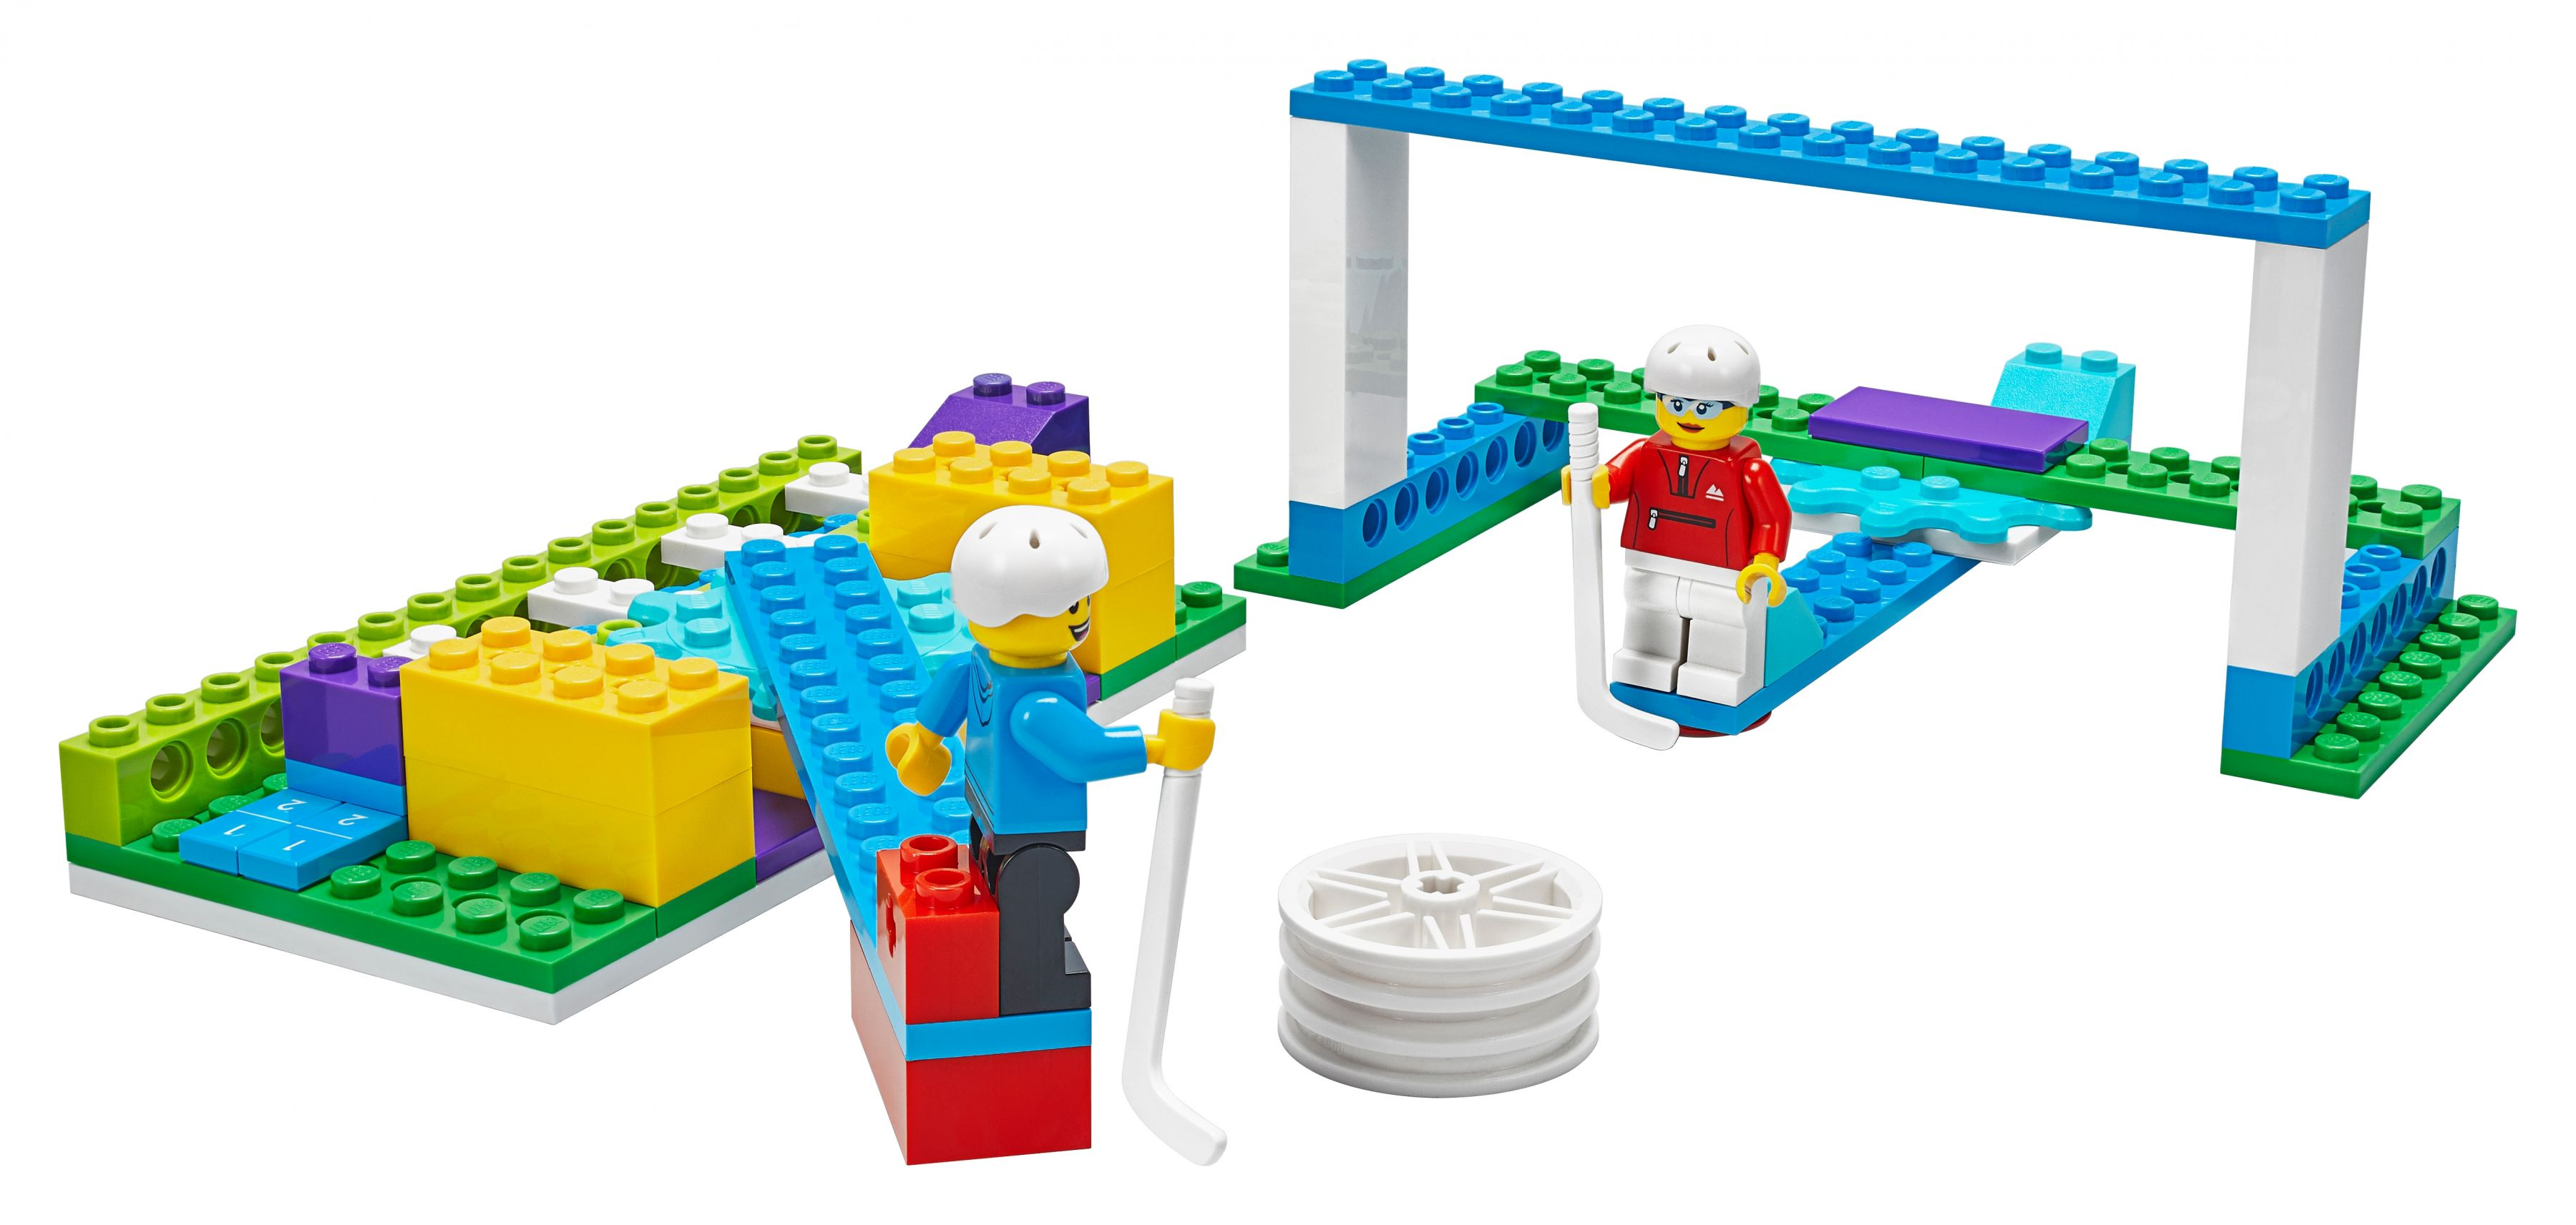 LEGO Education 45401 LEGO® Education BricQ Motion Essential-Set LEGO_45401_alt5.jpg